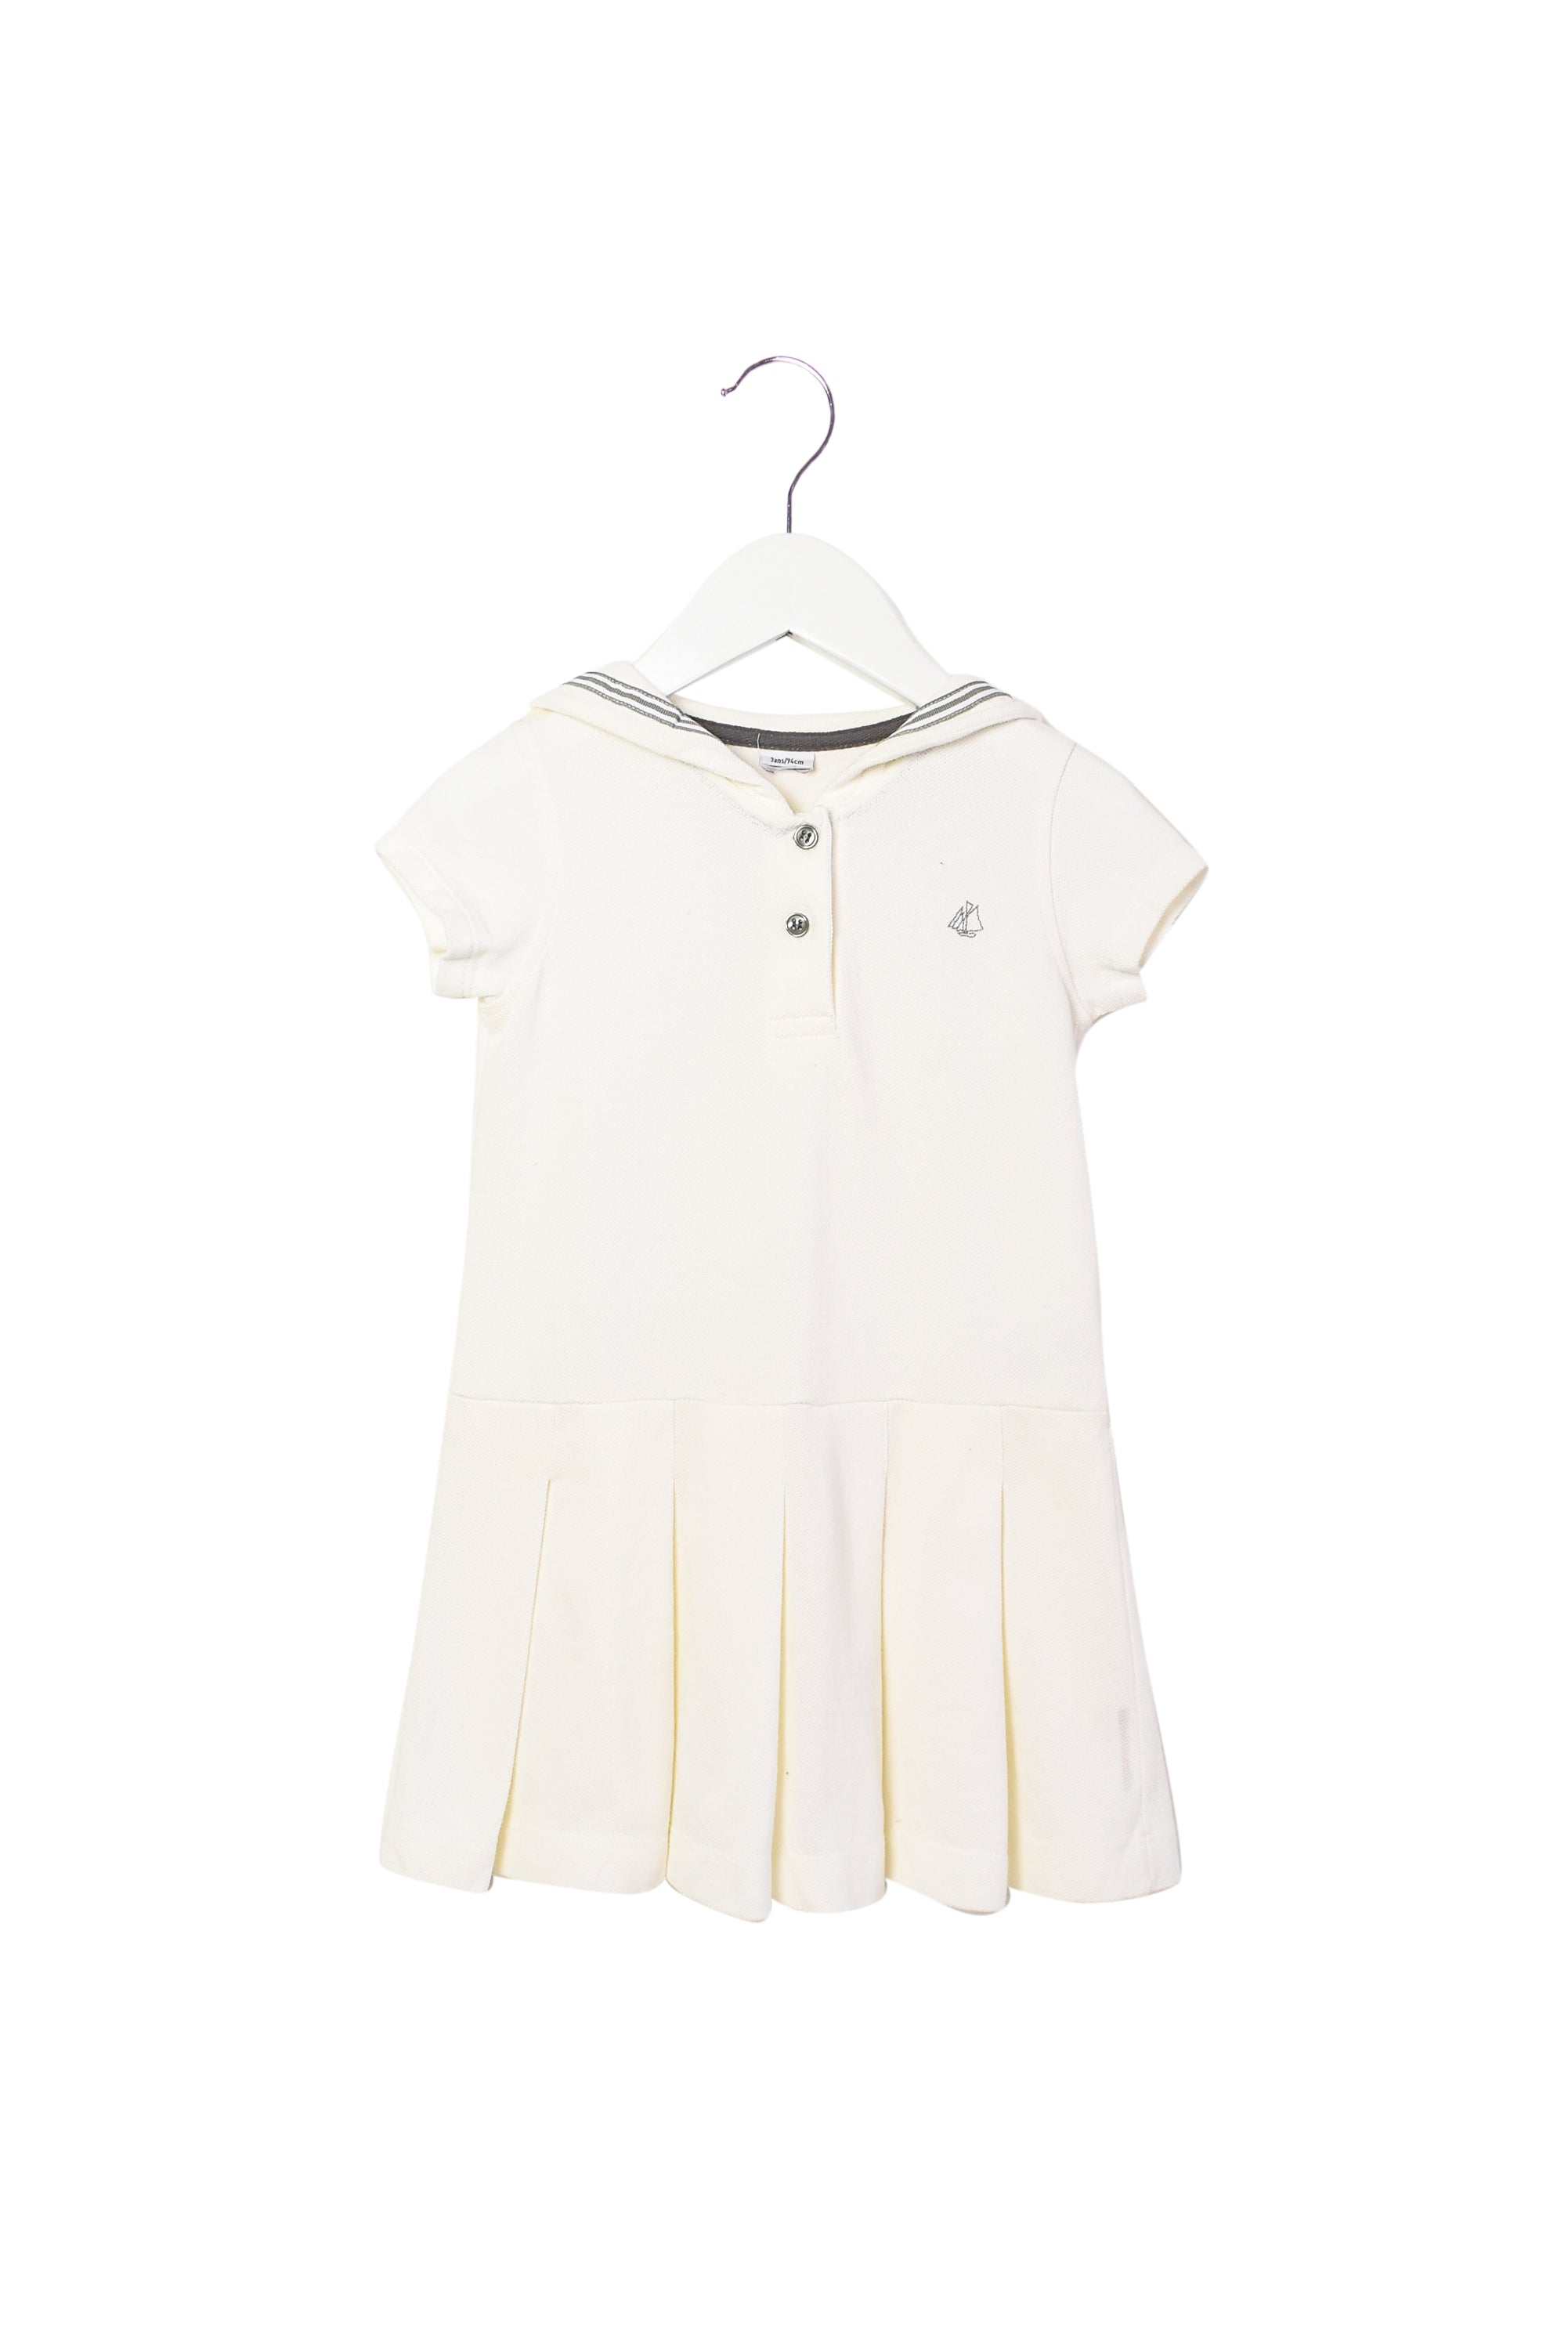 10008450 Petit Bateau Kids~Dress 3T at Retykle